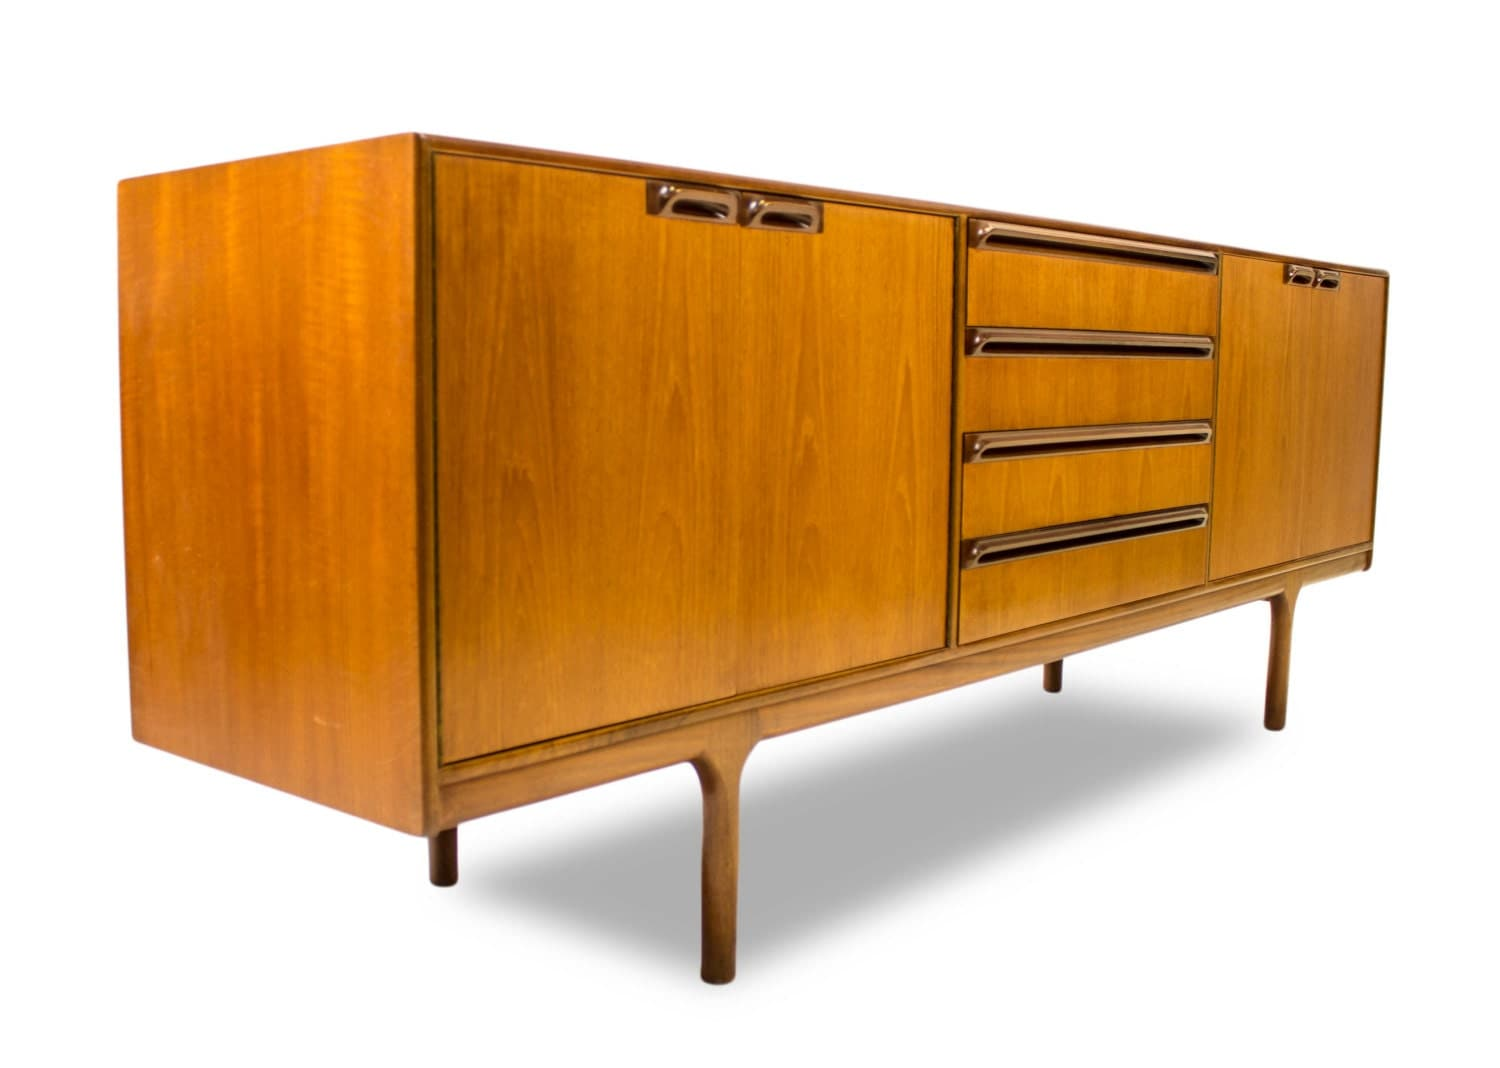 teak mid century credenza media console by by modcenturyvintage. Black Bedroom Furniture Sets. Home Design Ideas